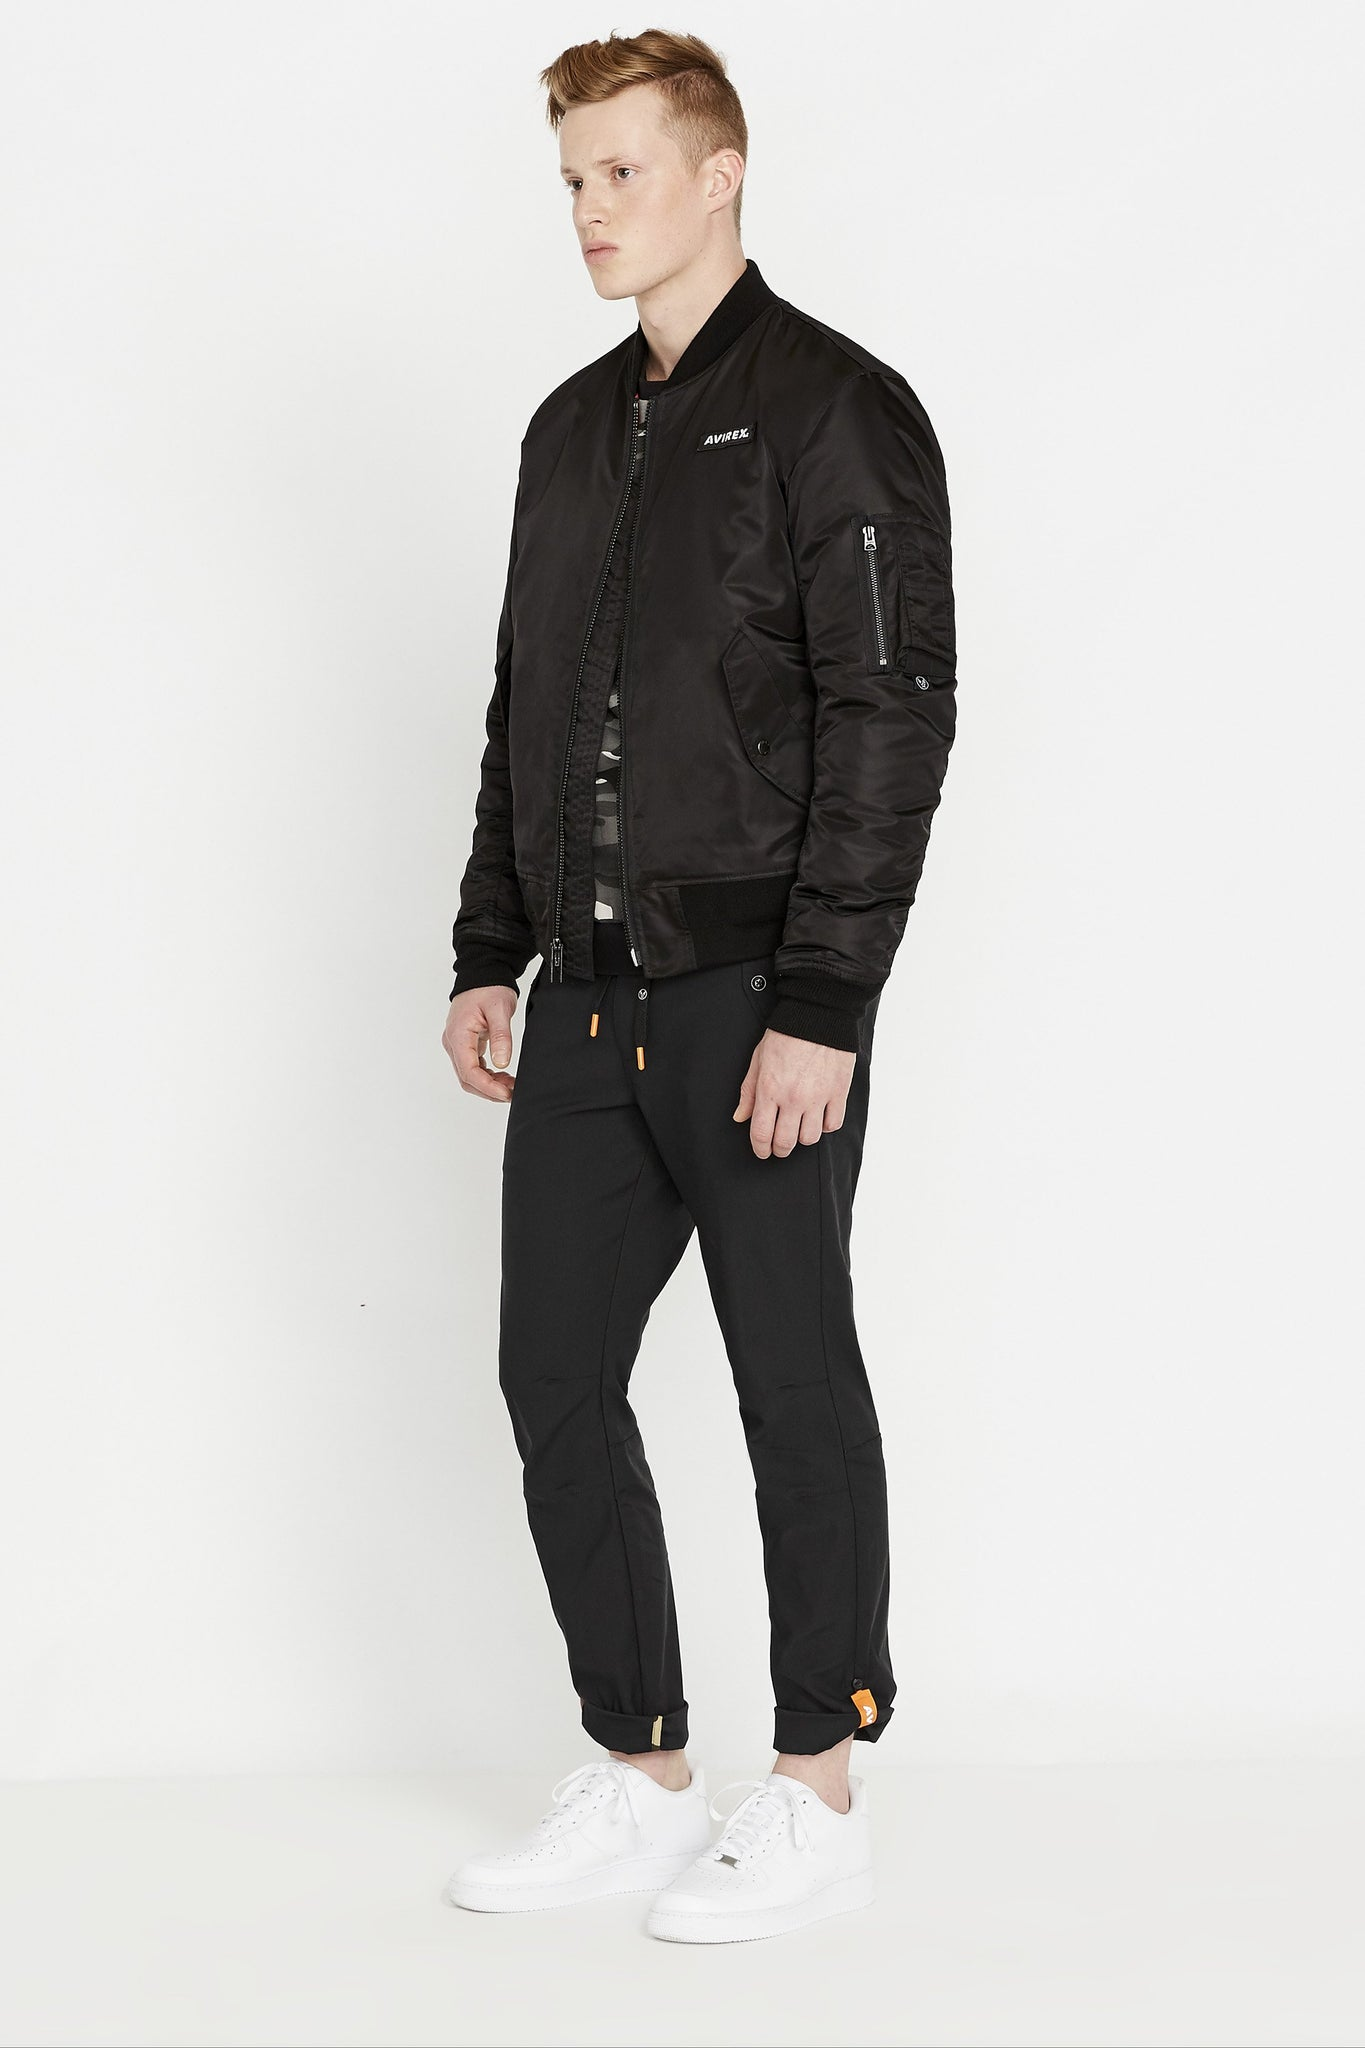 Side full view of men wearing an open black original aviation bomber nylon jacket with Iconic utility pocket on sleeve and two side pockets and black pants